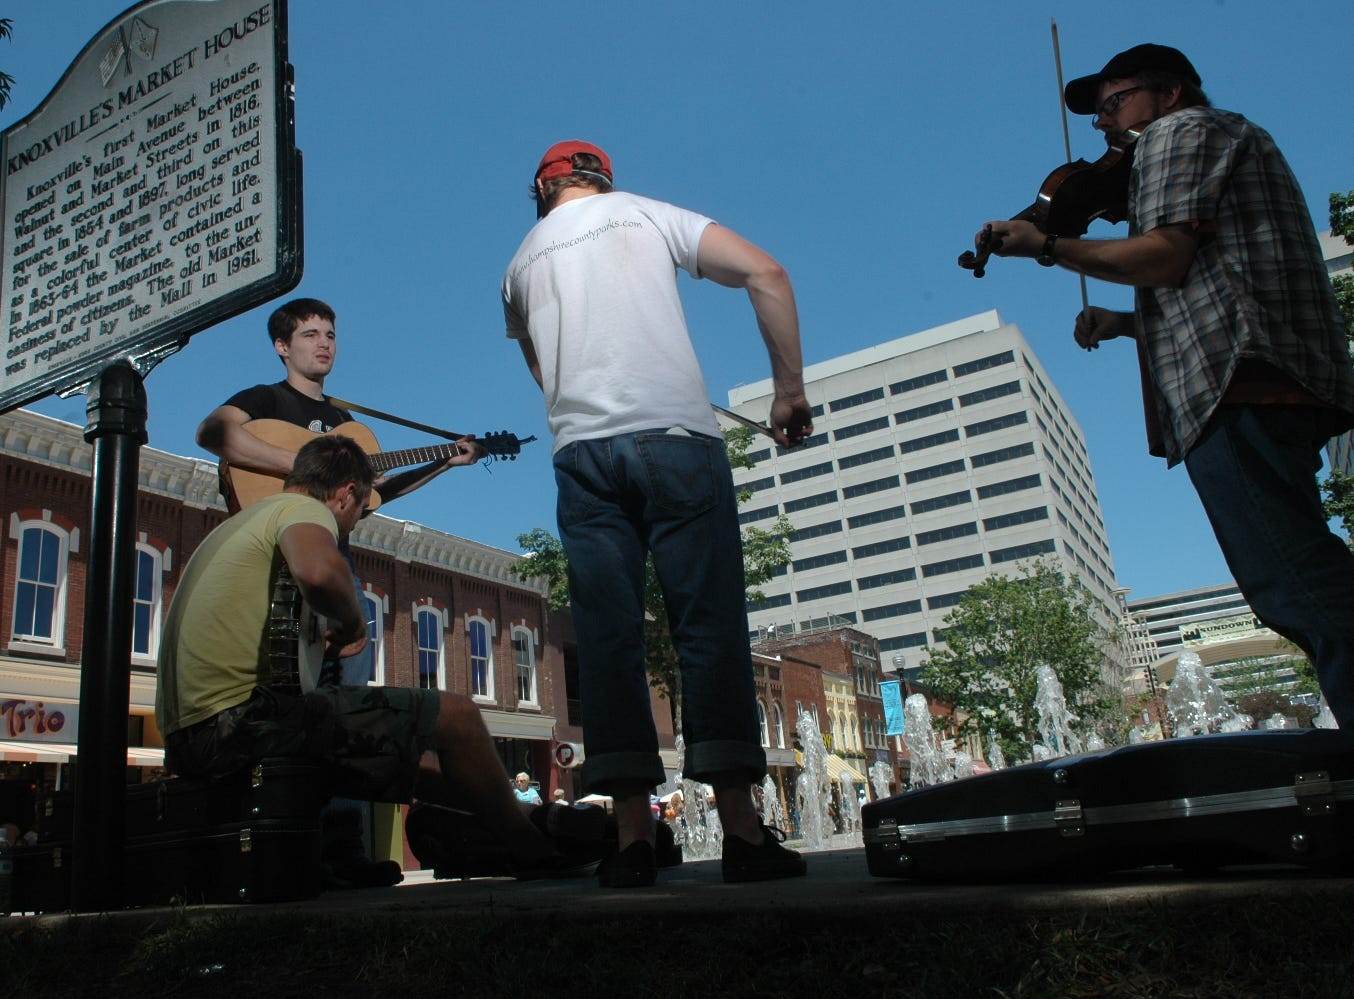 "Musicians, from left, John Mills, Matt Metz, Ben Townsend, and Greg Horne play a tune titled ""Crackshot"" on Thursday, June 21 at Market Square. Hailing from Romney, West Virginia, and calling themselves the Fox Hunt,  the band is in town for gigs including two appearances on WDVK's Plate Plate Special show (Horne is a local fiddle player who is sitting in with the boys). ""We're out here making enough money to make it back to West Virginia,"" said Townsend.  Photo by Paul Efird, Knoxville News Sentinel staff"